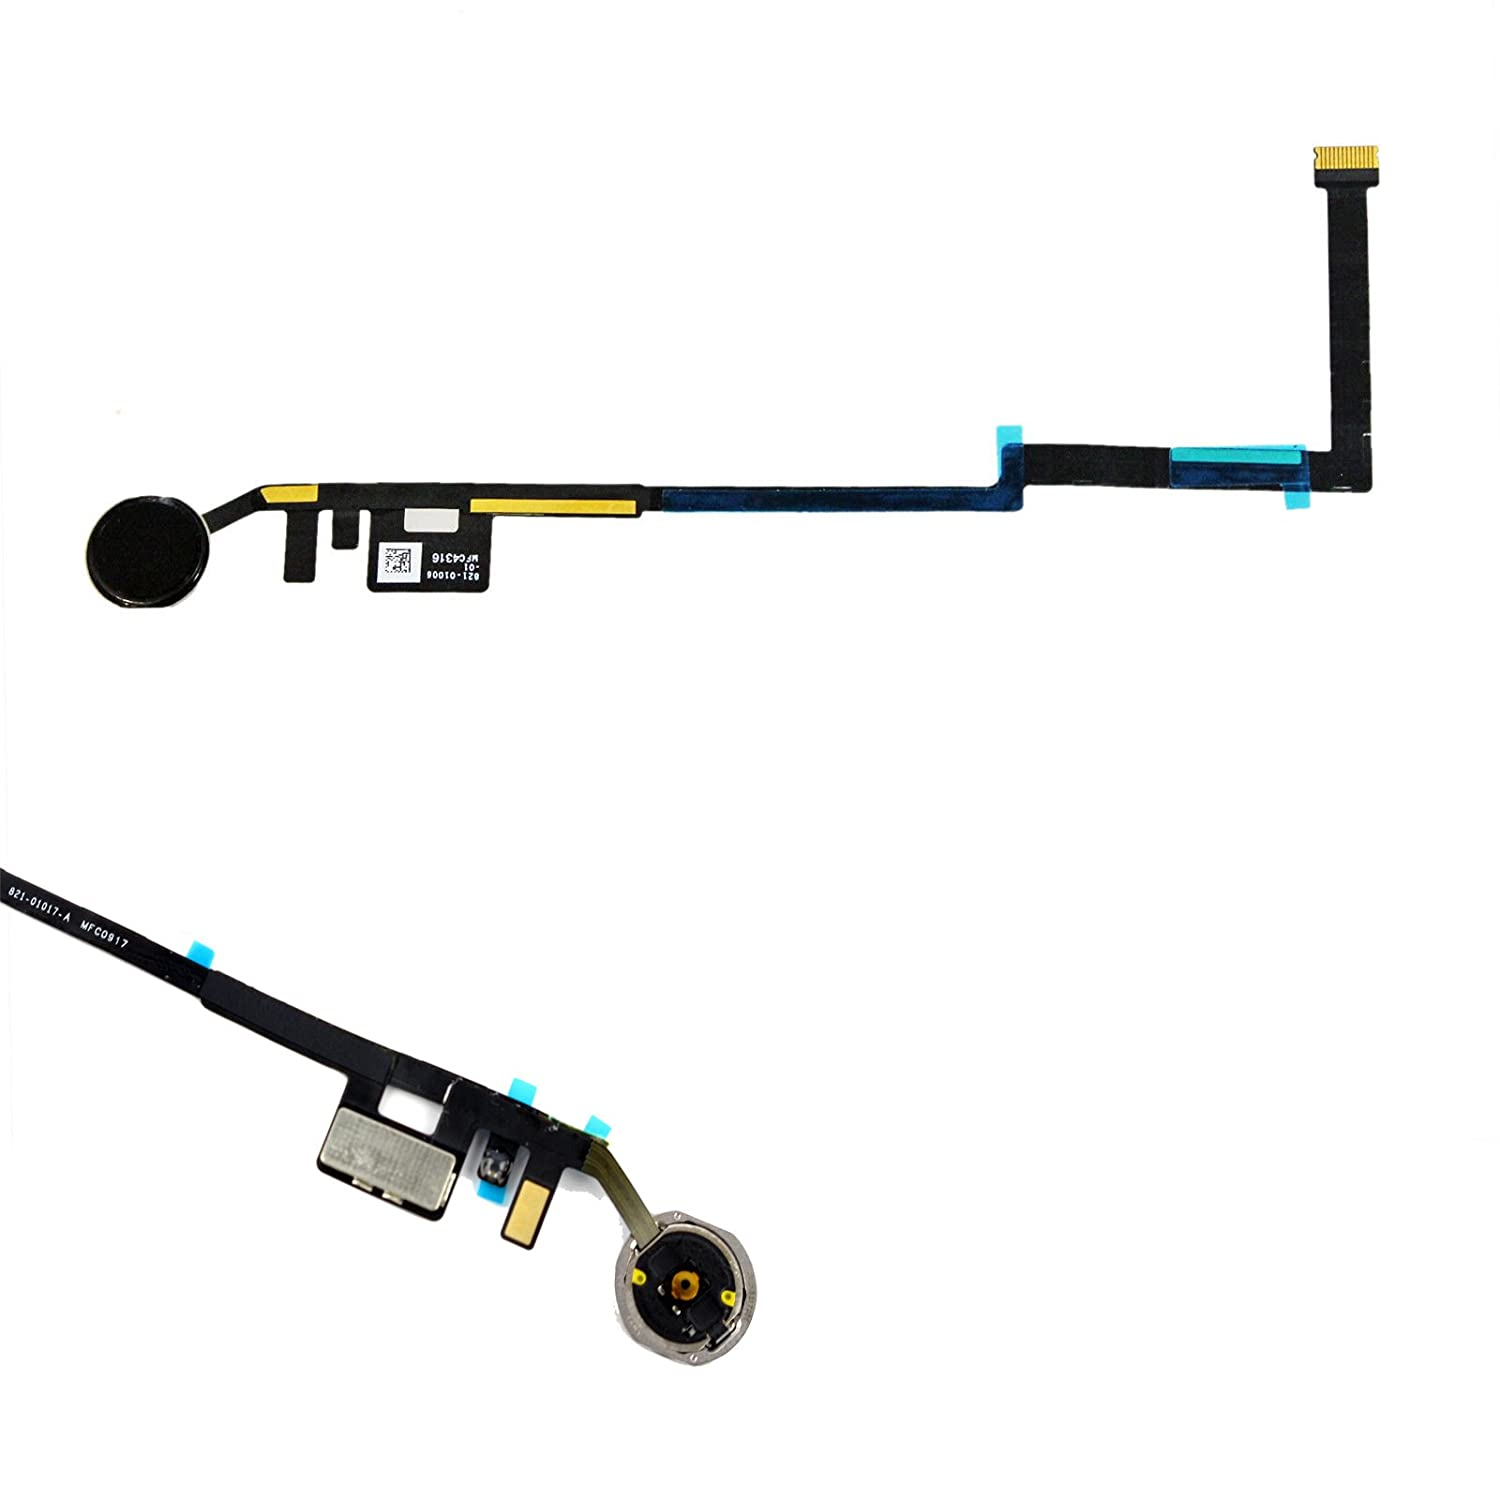 """New Eaglestar Replacement Home Key Button Flex Cable for iPad 5th Gen 9.7"""" 2017 A1822 A1823-Black (Black Ring)"""